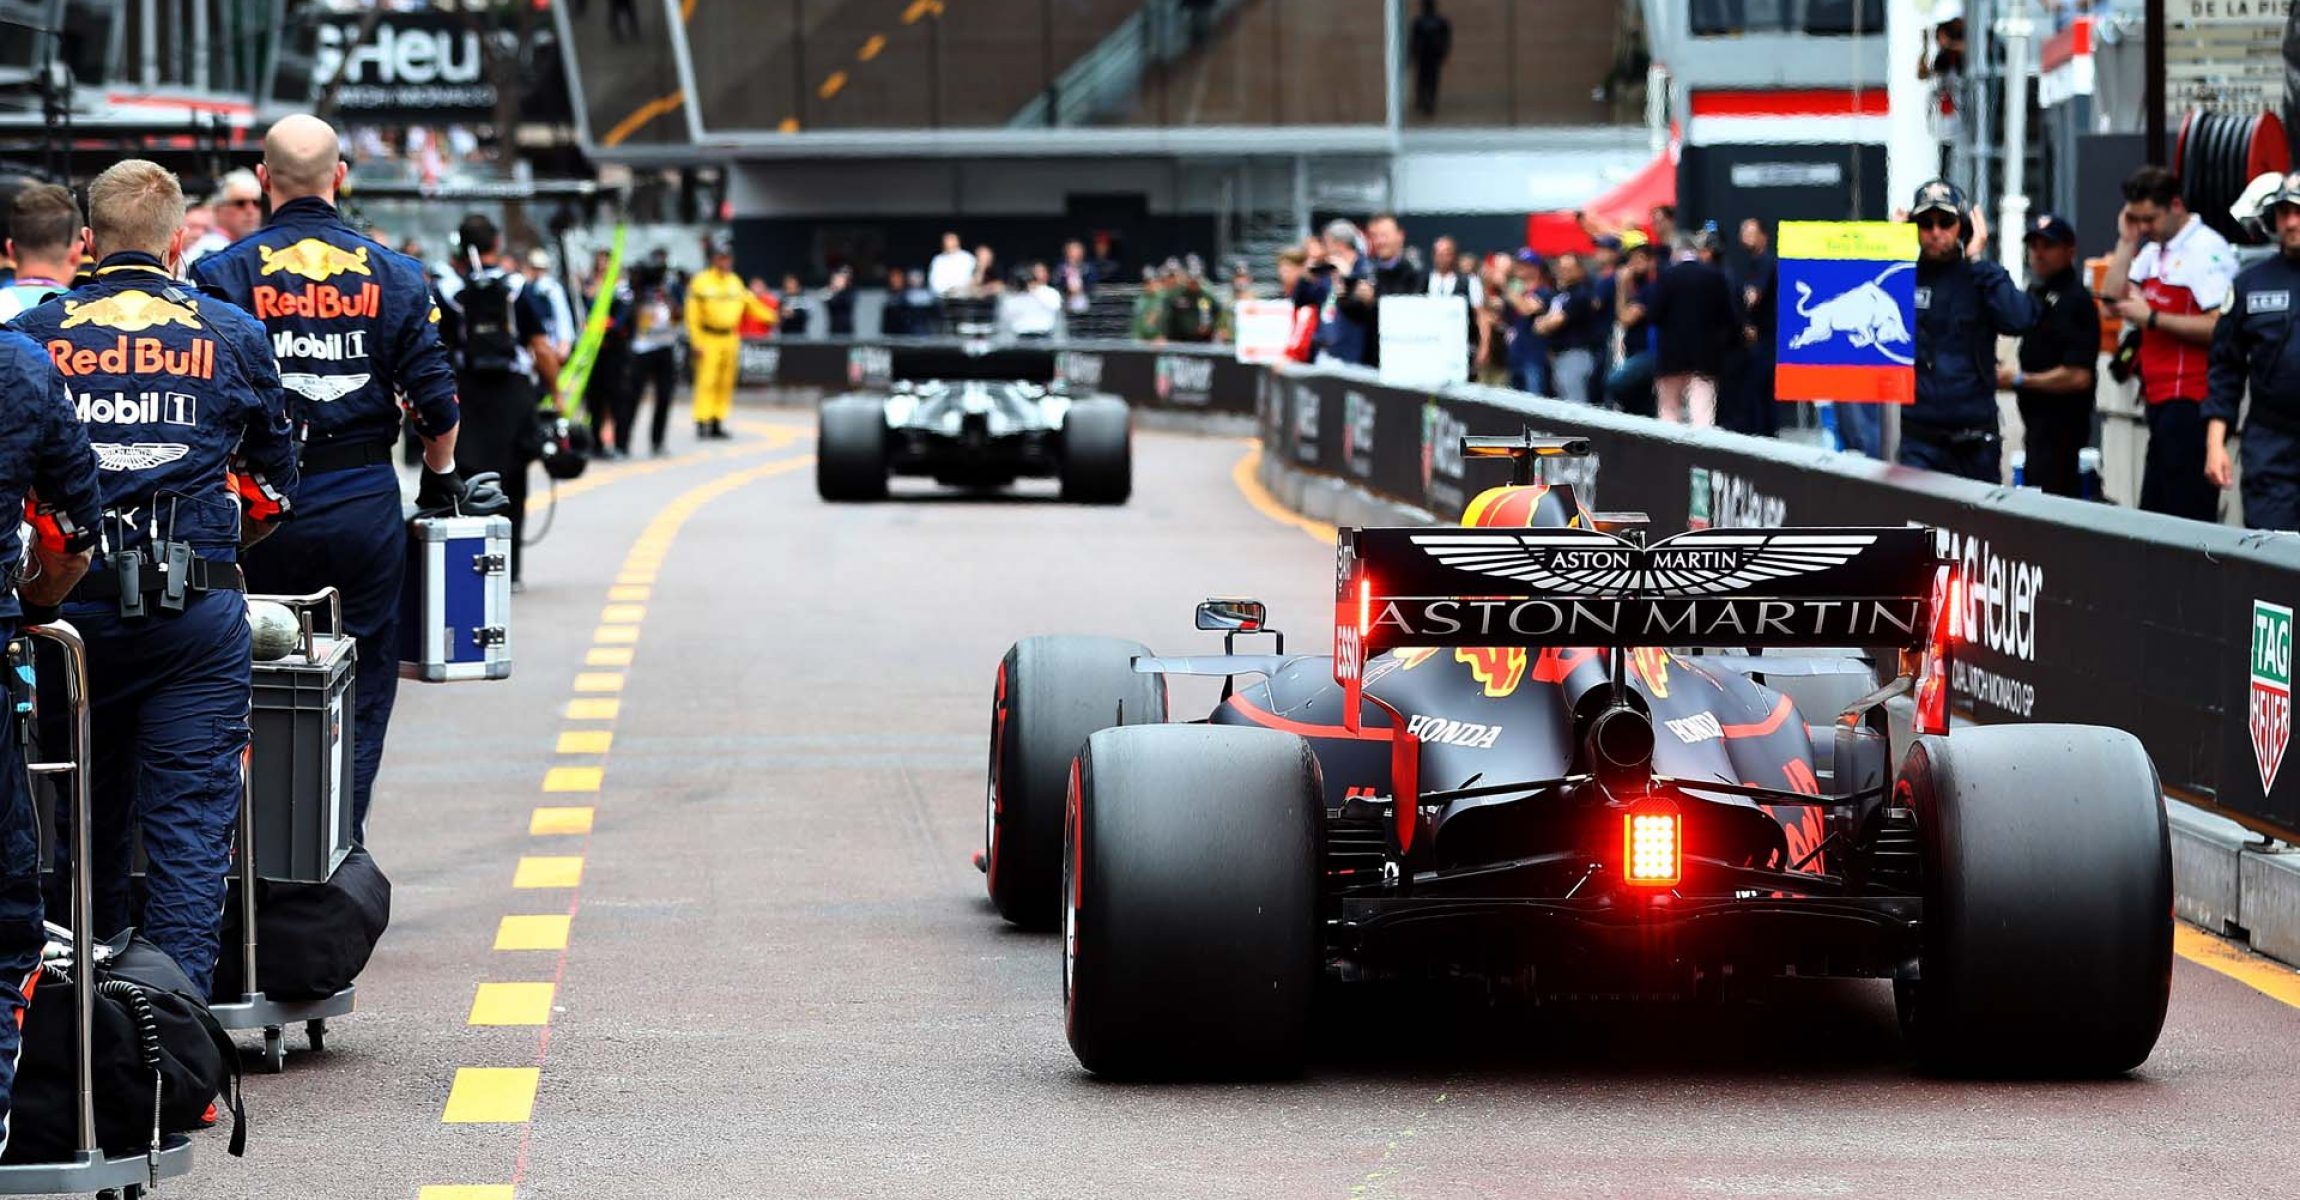 MONTE-CARLO, MONACO - MAY 26: Max Verstappen of the Netherlands driving the (33) Aston Martin Red Bull Racing RB15 in the Pitlane before the F1 Grand Prix of Monaco at Circuit de Monaco on May 26, 2019 in Monte-Carlo, Monaco. (Photo by Mark Thompson/Getty Images) // Getty Images / Red Bull Content Pool // AP-1ZF2MKFED1W11 // Usage for editorial use only // Please go to www.redbullcontentpool.com for further information. //